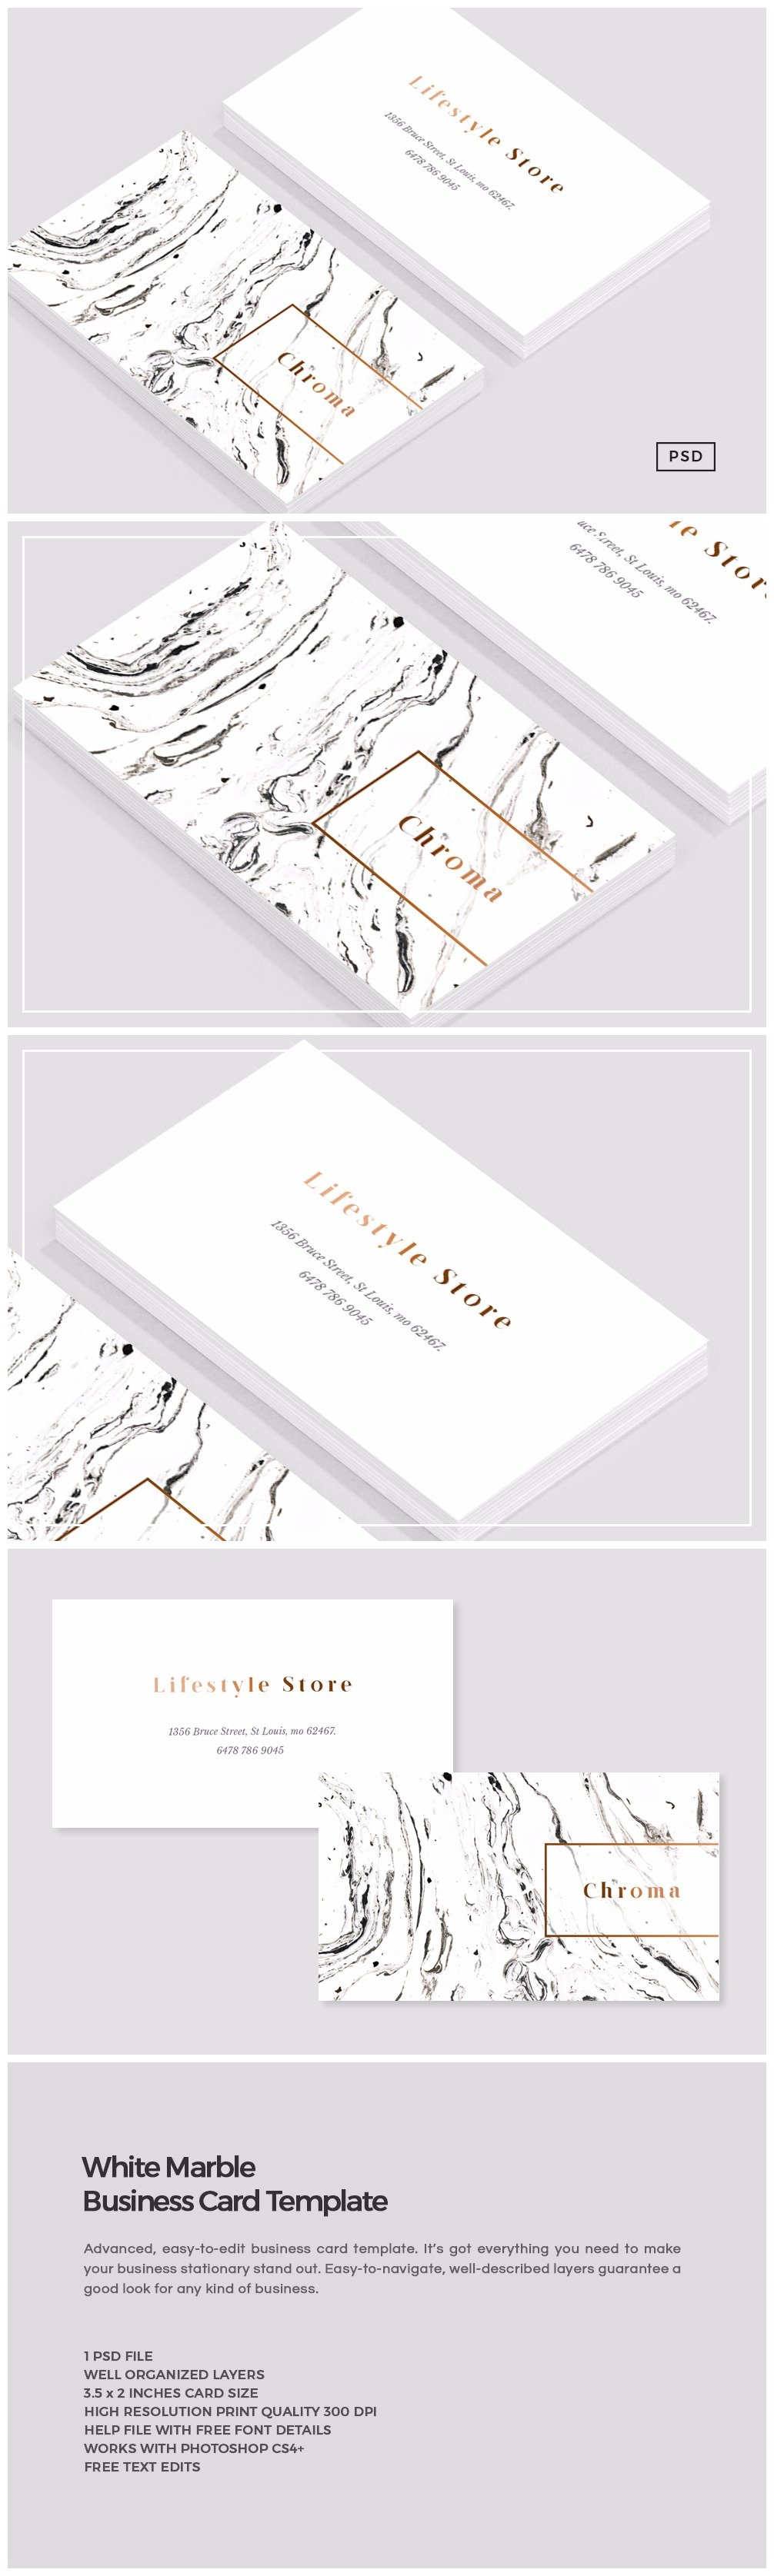 How To Design Impressive Business Cards Using Templates Creative File Type Photoshop Psd Image Size 3400 X 2800 Resolution White Marble Copper Card